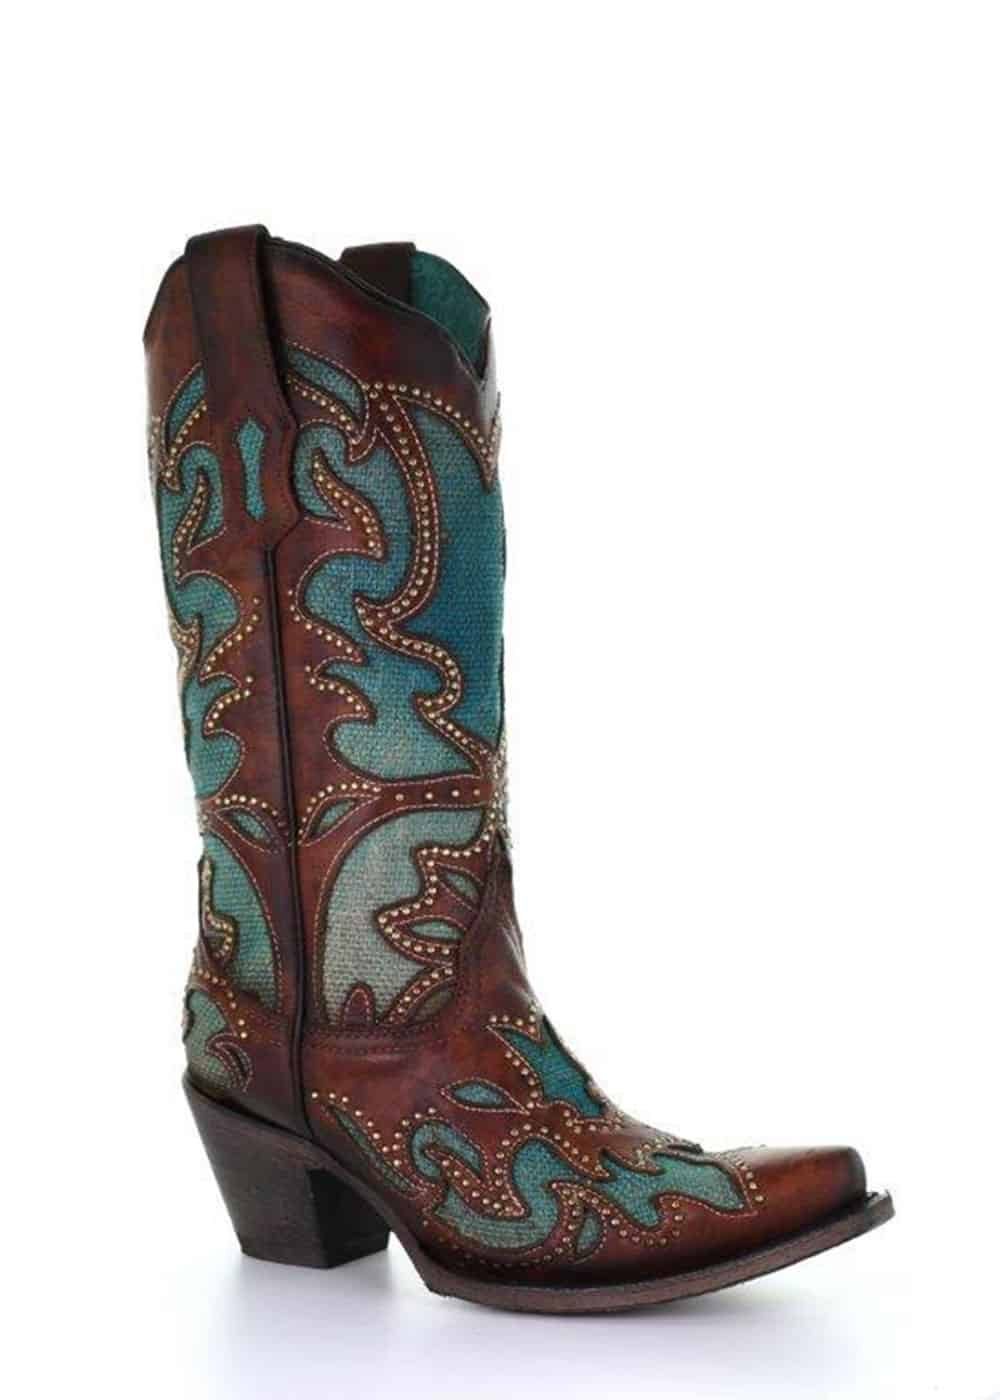 brown boots with blue inlays cowgirl magazine